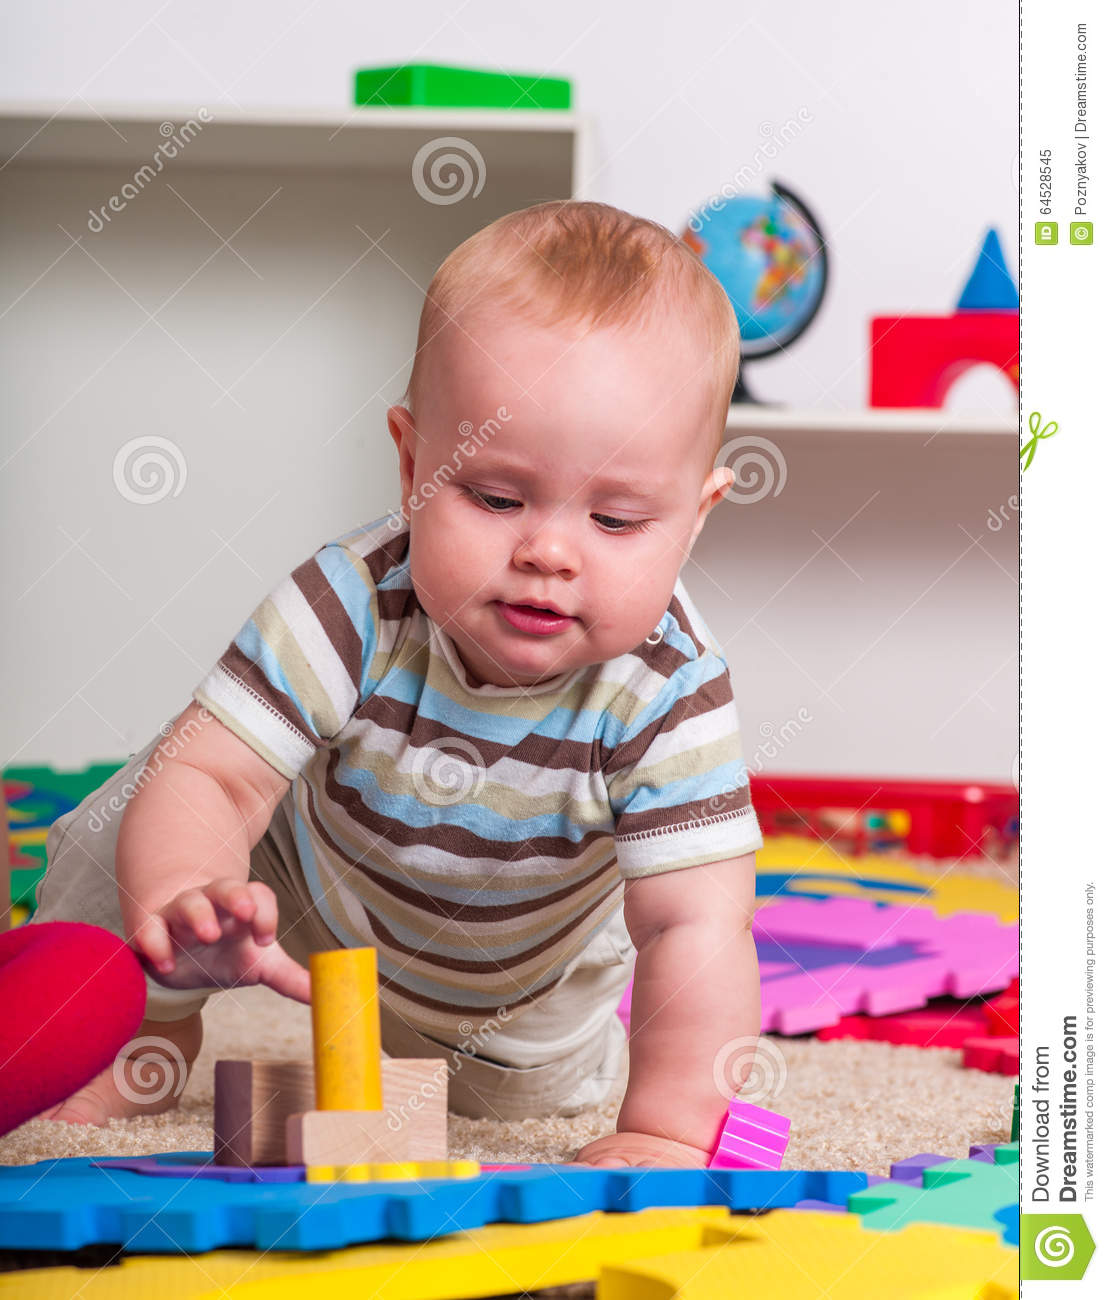 Baby Floor Toys : Kid baby boy plying with puzzle toy on floor stock photo